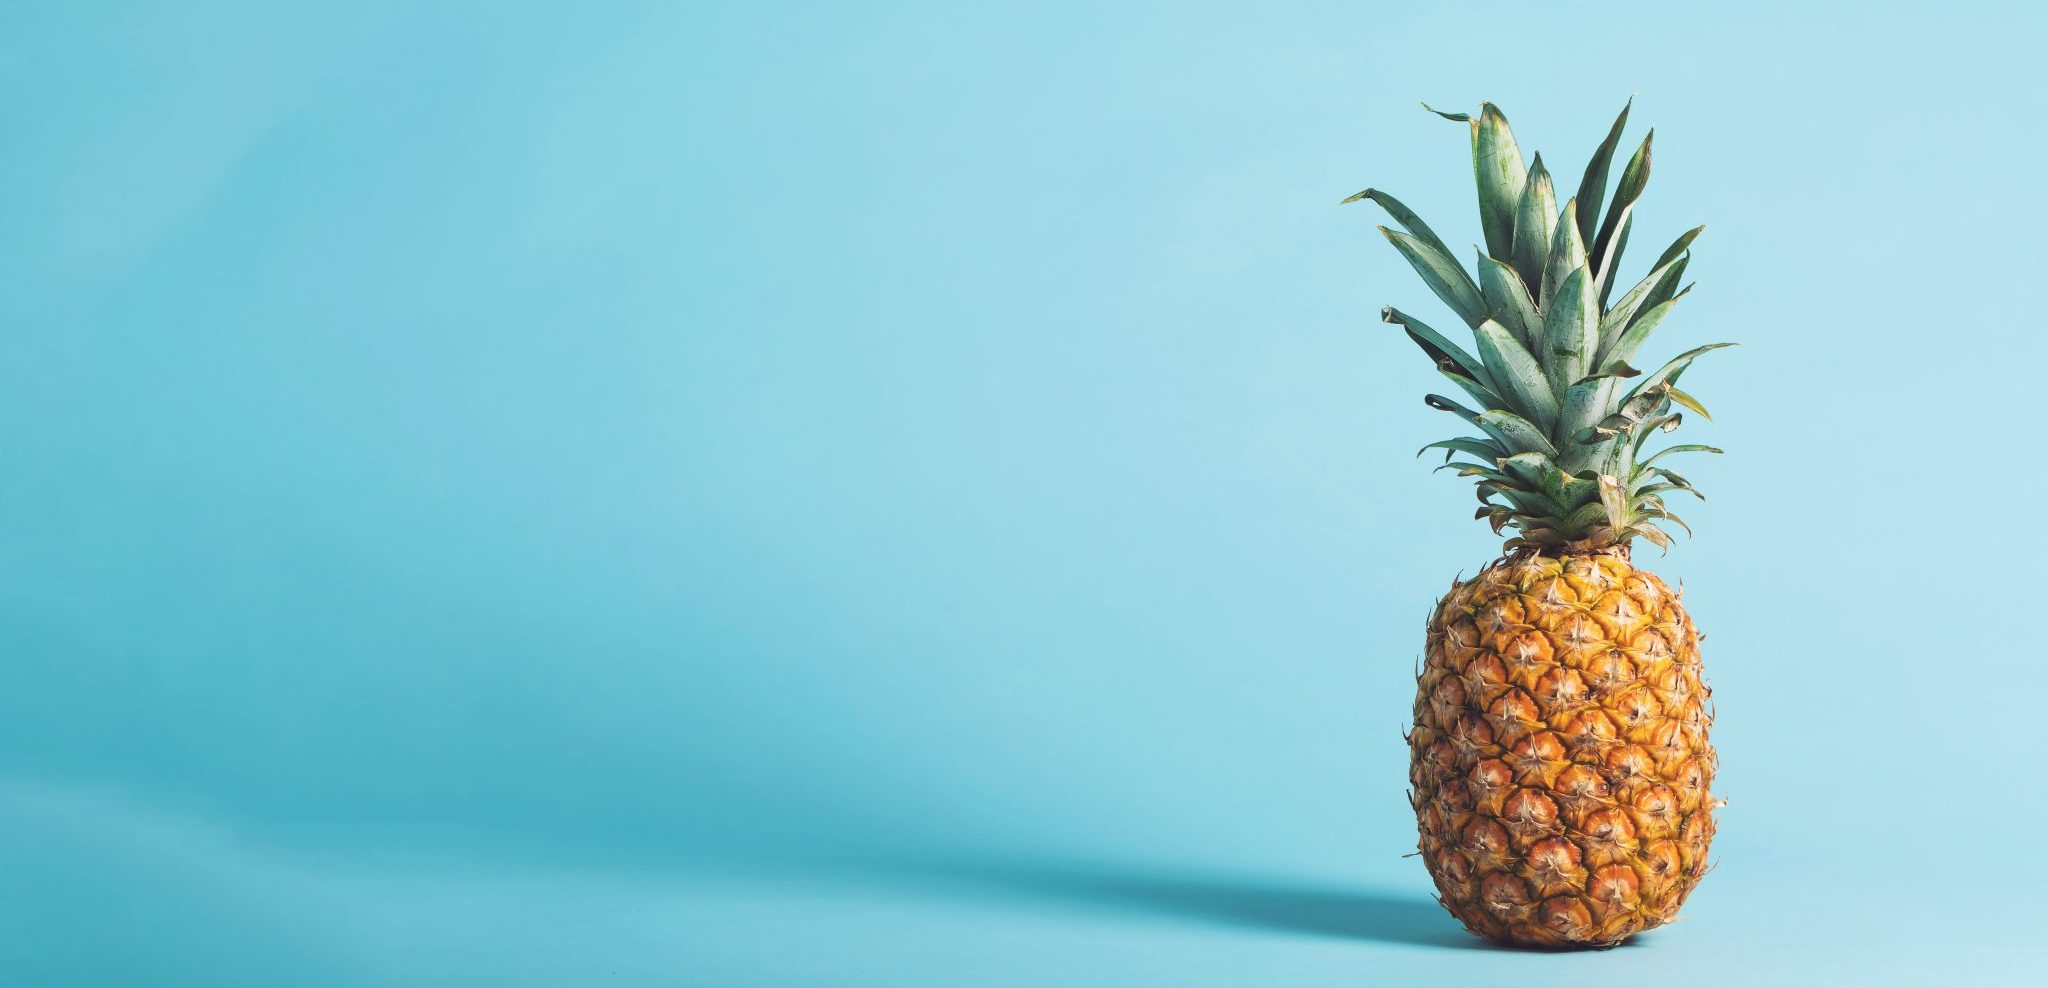 Eating Pineapple During Pregnancy: Is This a Good Idea?